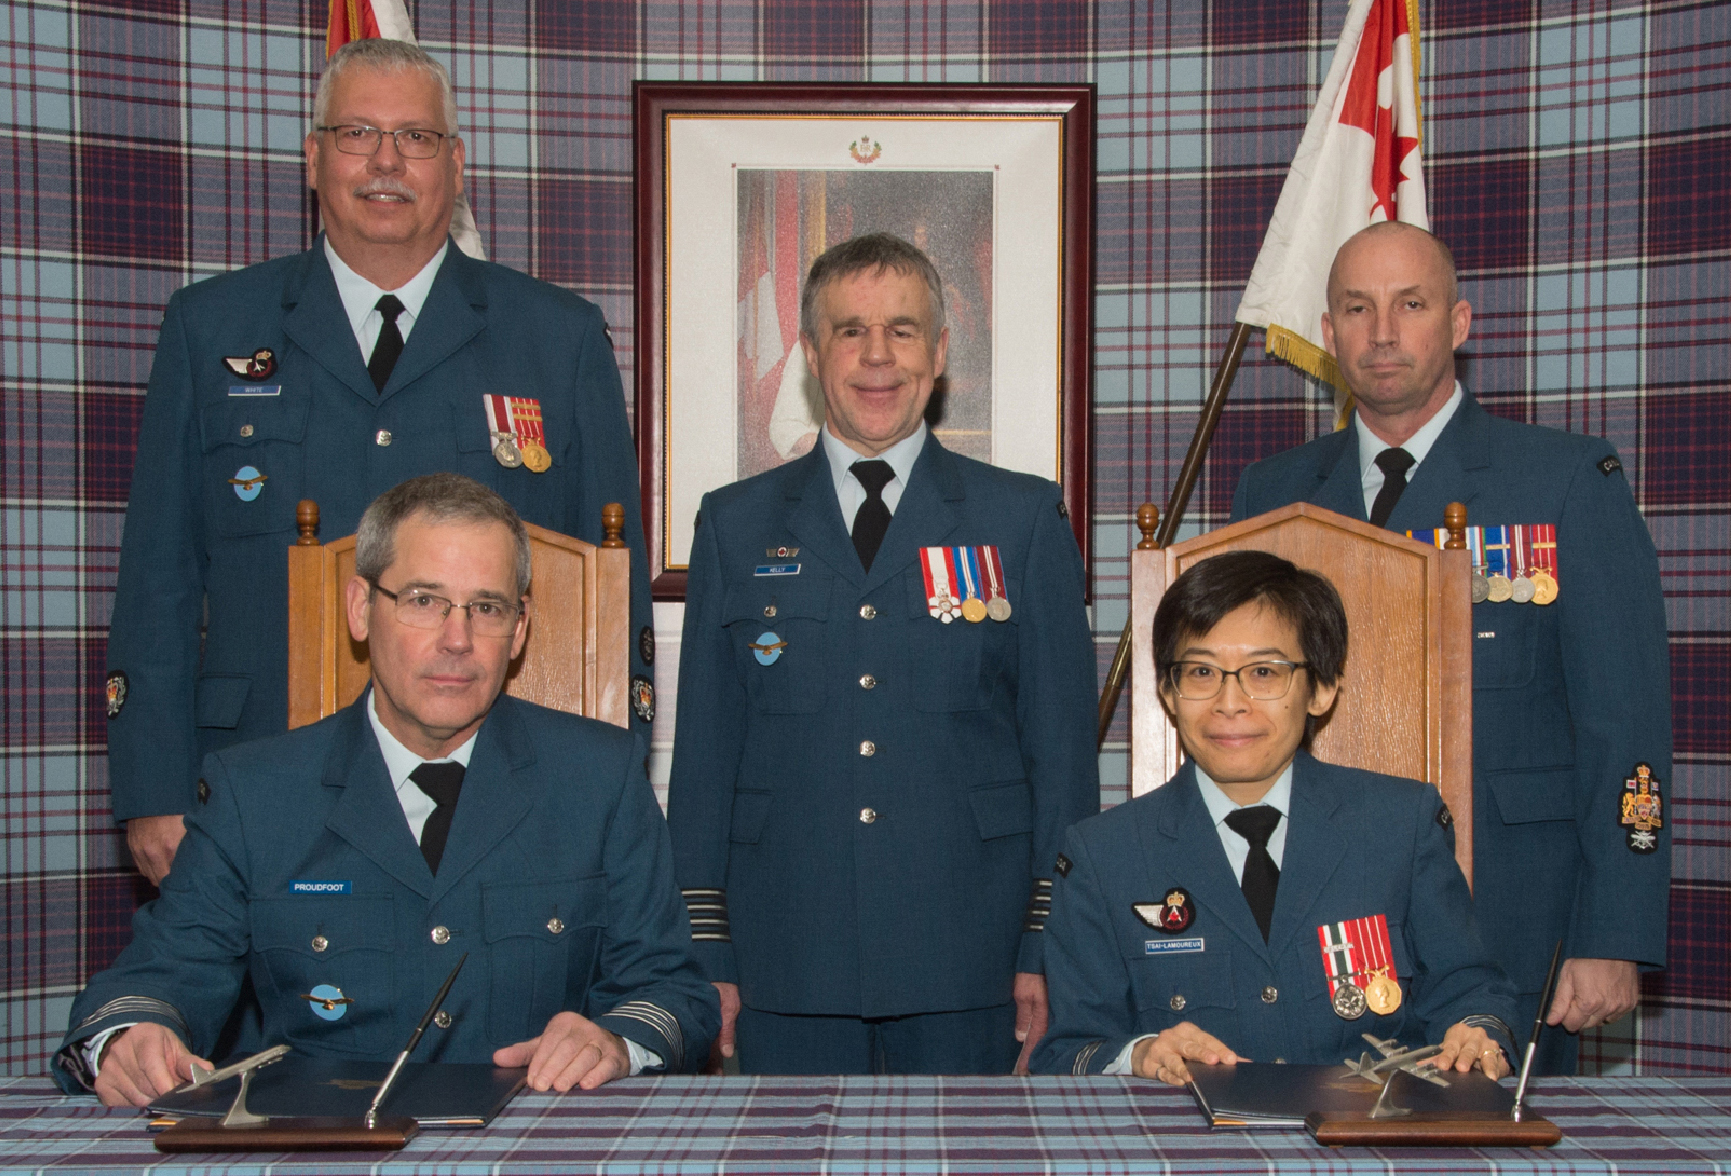 Four men and one woman, all wearing similar blue military uniforms, sit at or stand behind a table in front of a tartan backdrop displaying a framed photo; a flag stands on each side of the photo.